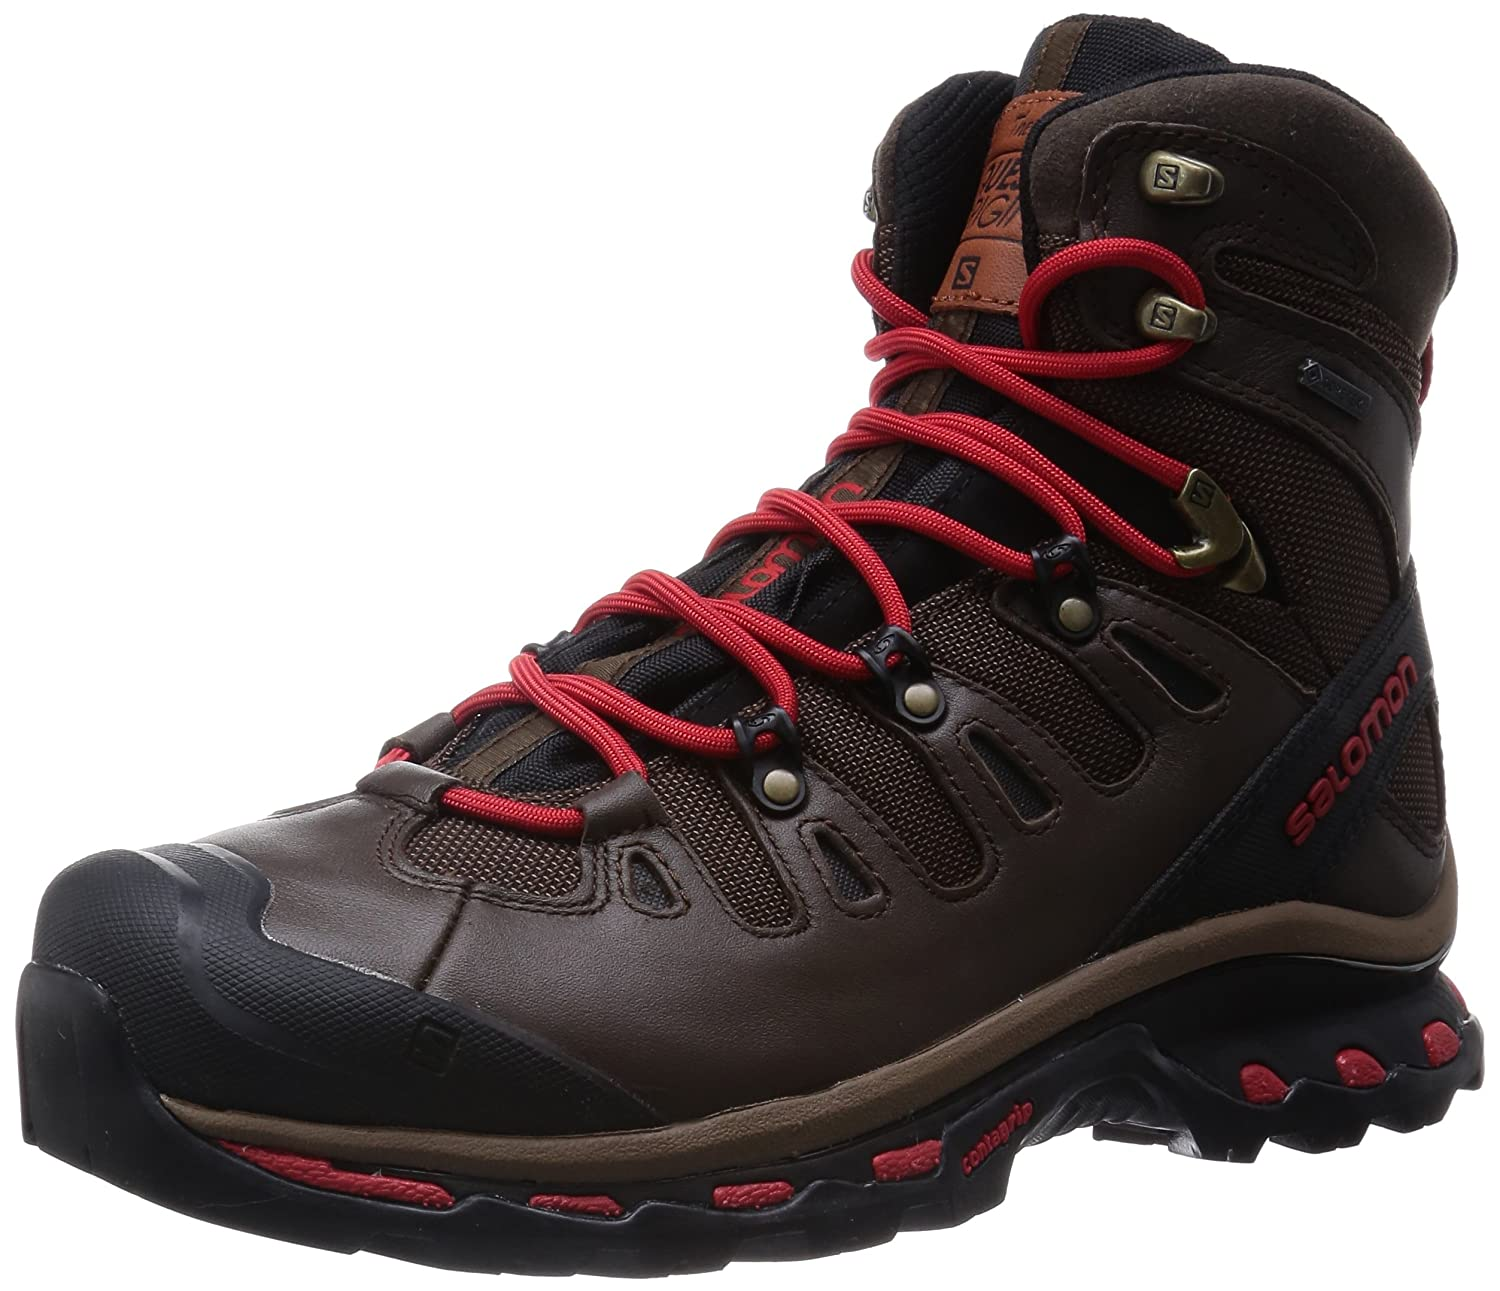 finest selection 289f2 12980 ... Salomon Quest Origins Gtx, Mens Hiking Boots ...